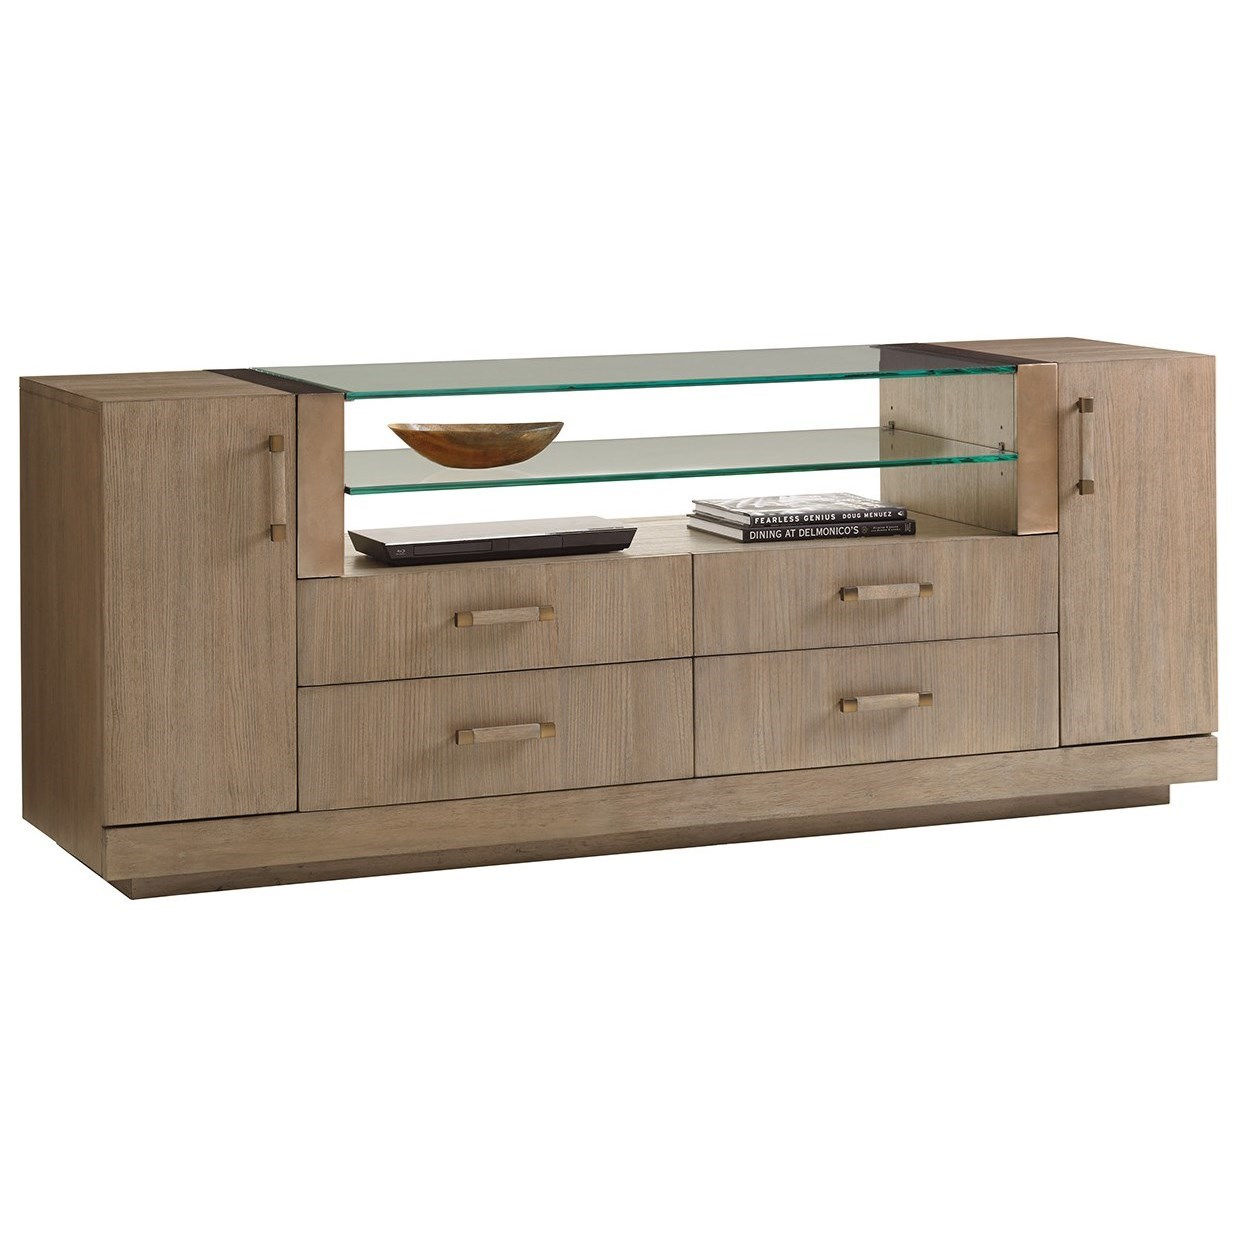 Lexington Shadow Play Turnberry Media Console - Item Number: 725-907